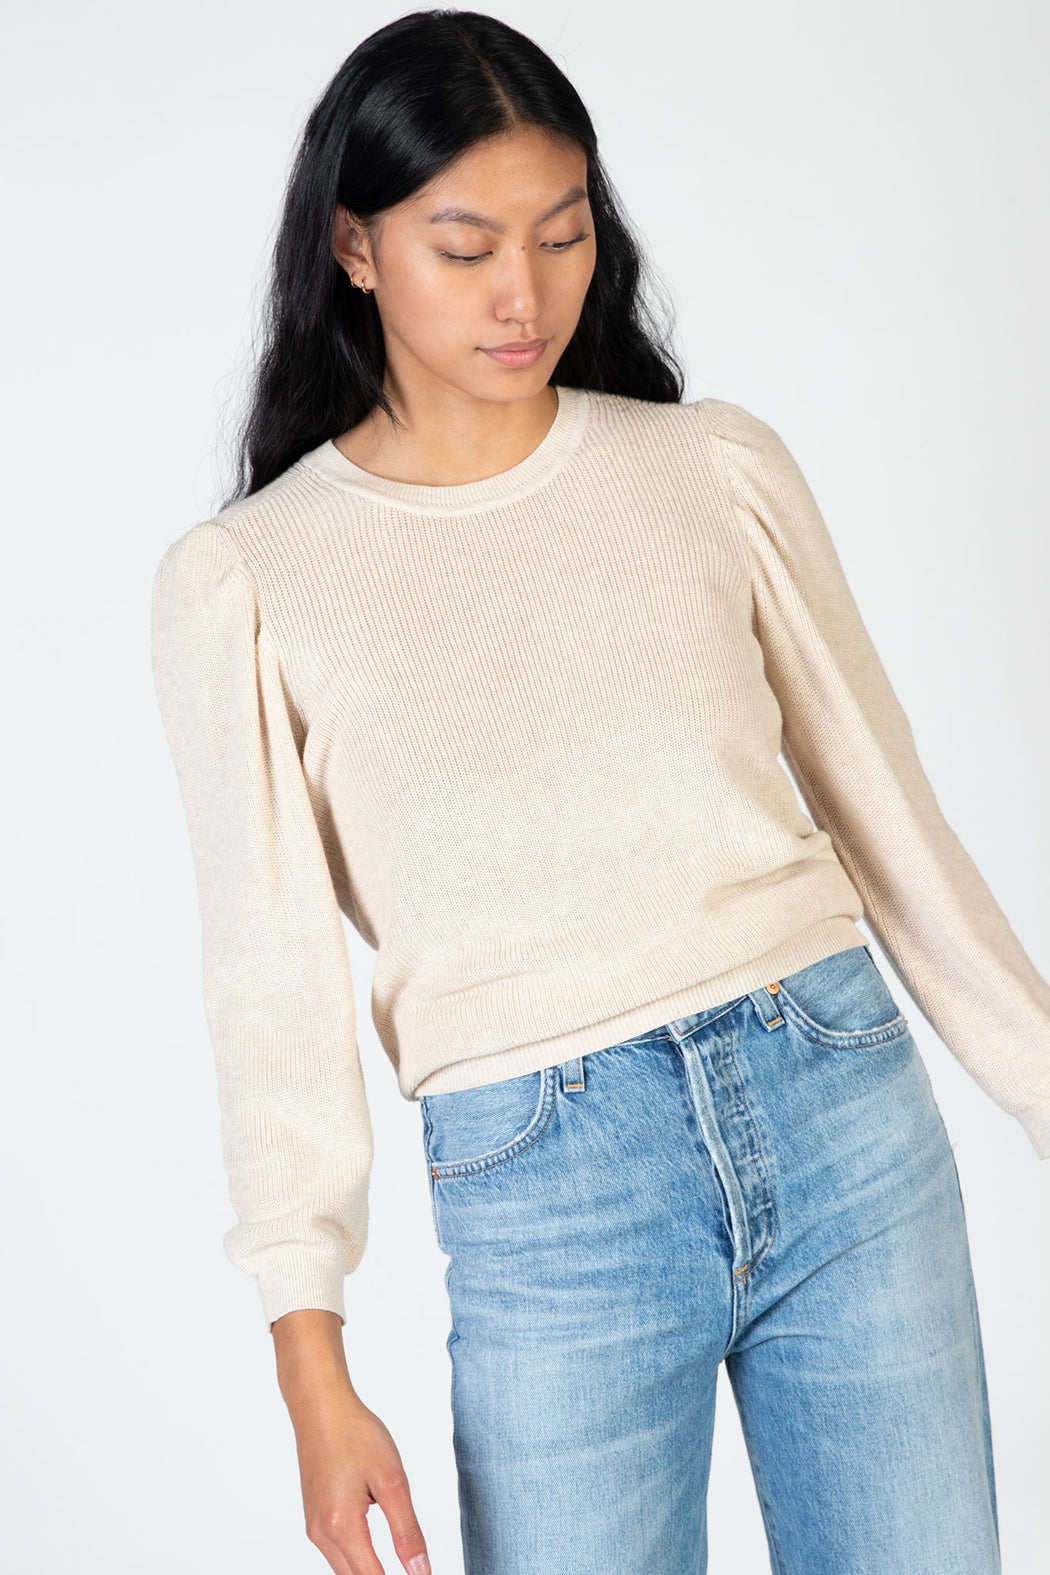 Autumn-Cashmere-34-Puff-Sleeve-Shaker-Crew-Natural